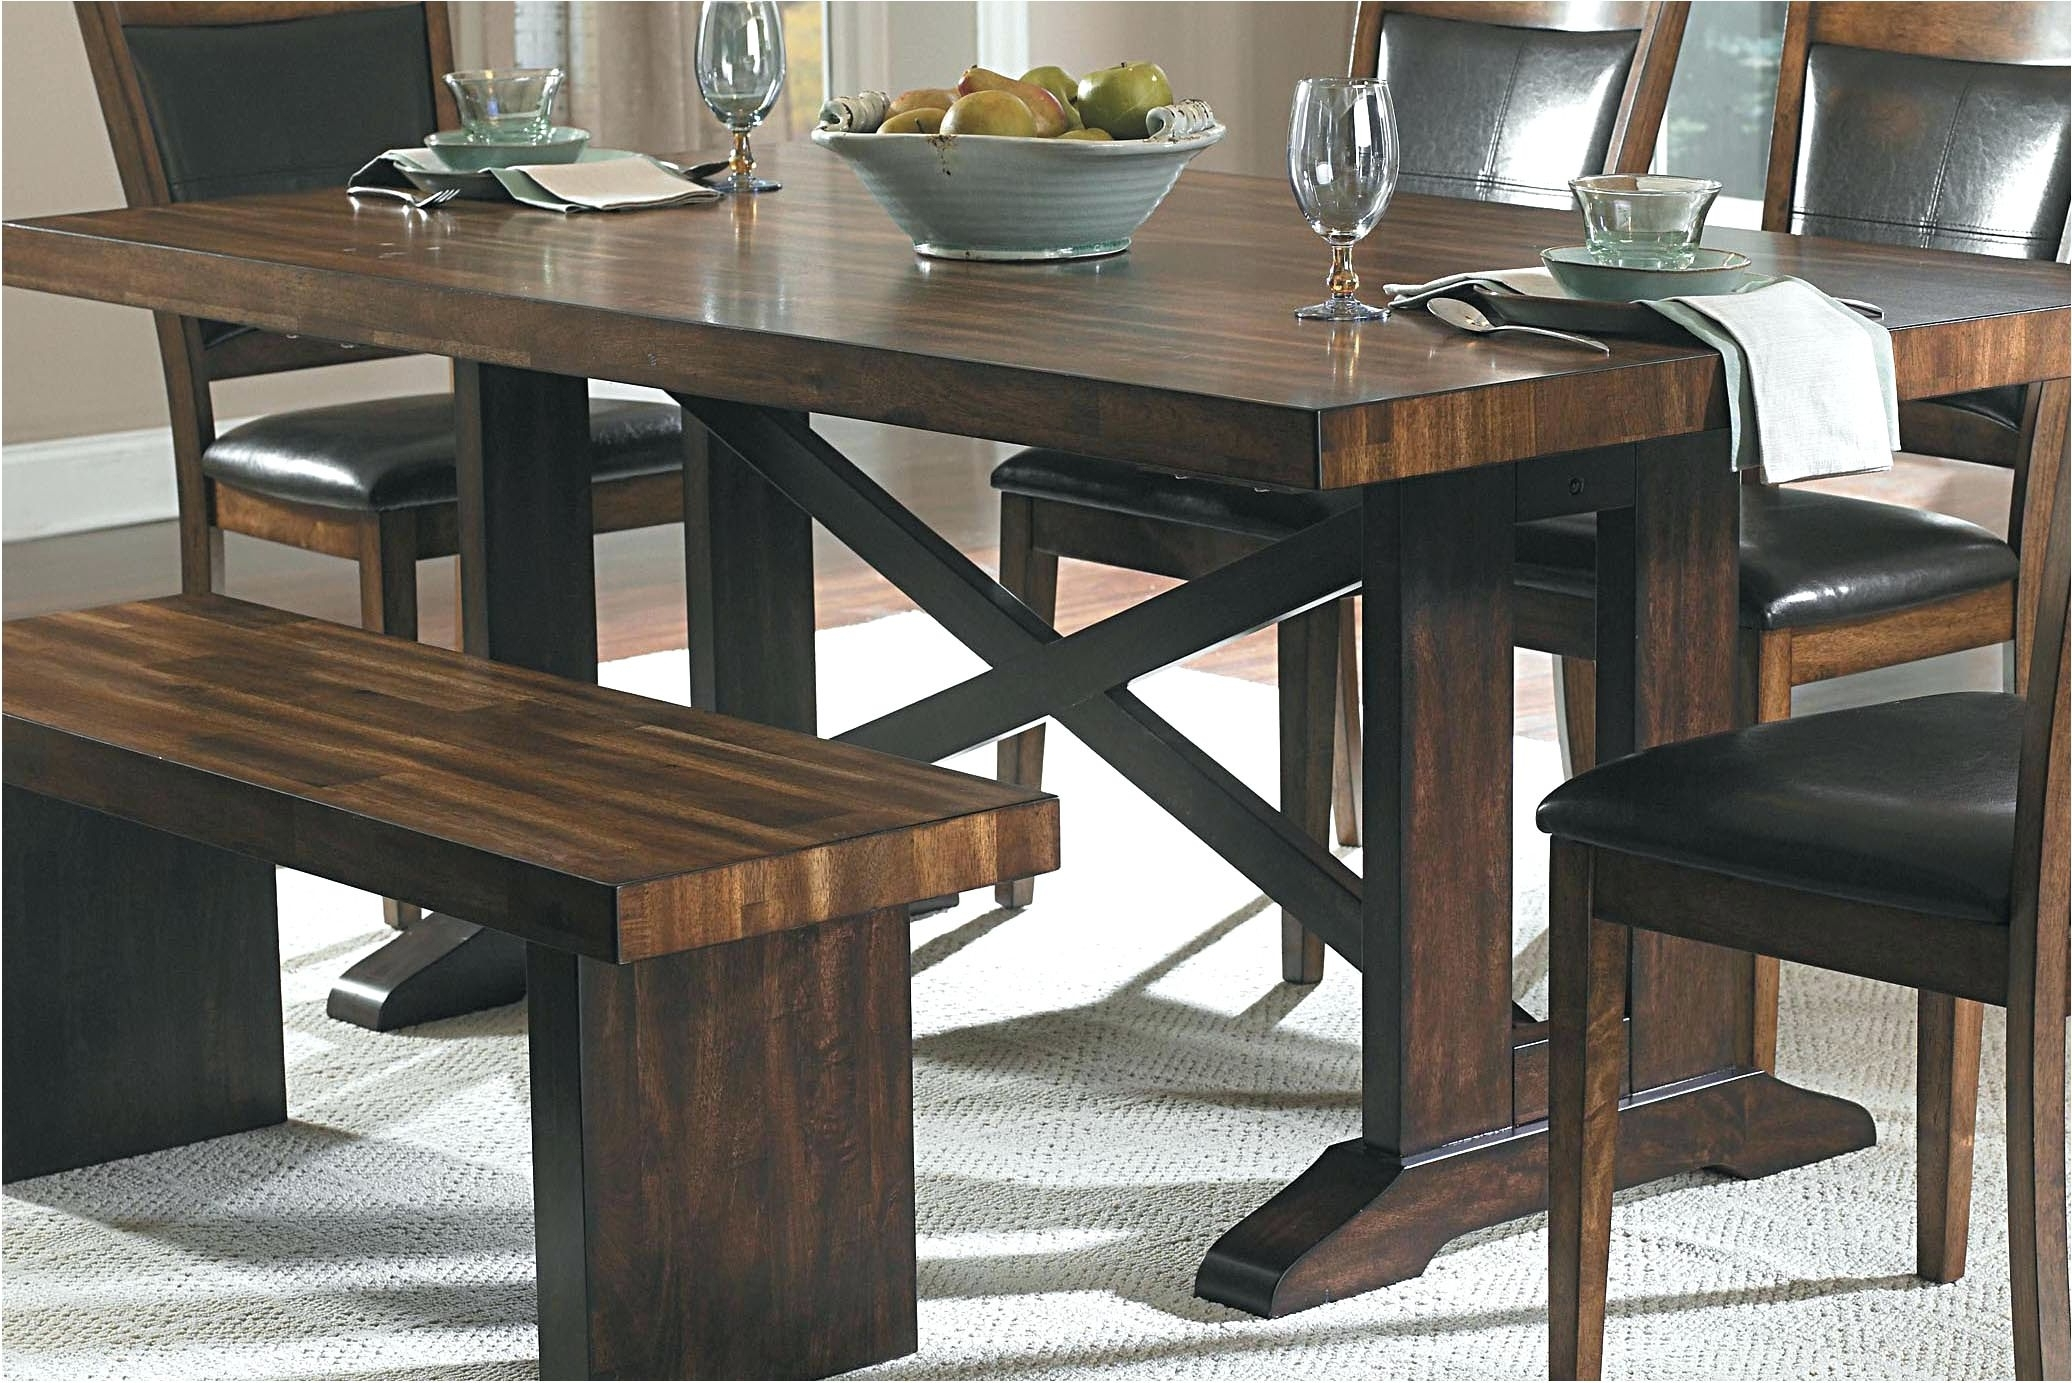 Indoor Picnic Style Dining Tables Pertaining To Most Recent Terrific Picnic Table Dining Room New Picnic Style Dining Room Table (Gallery 14 of 25)